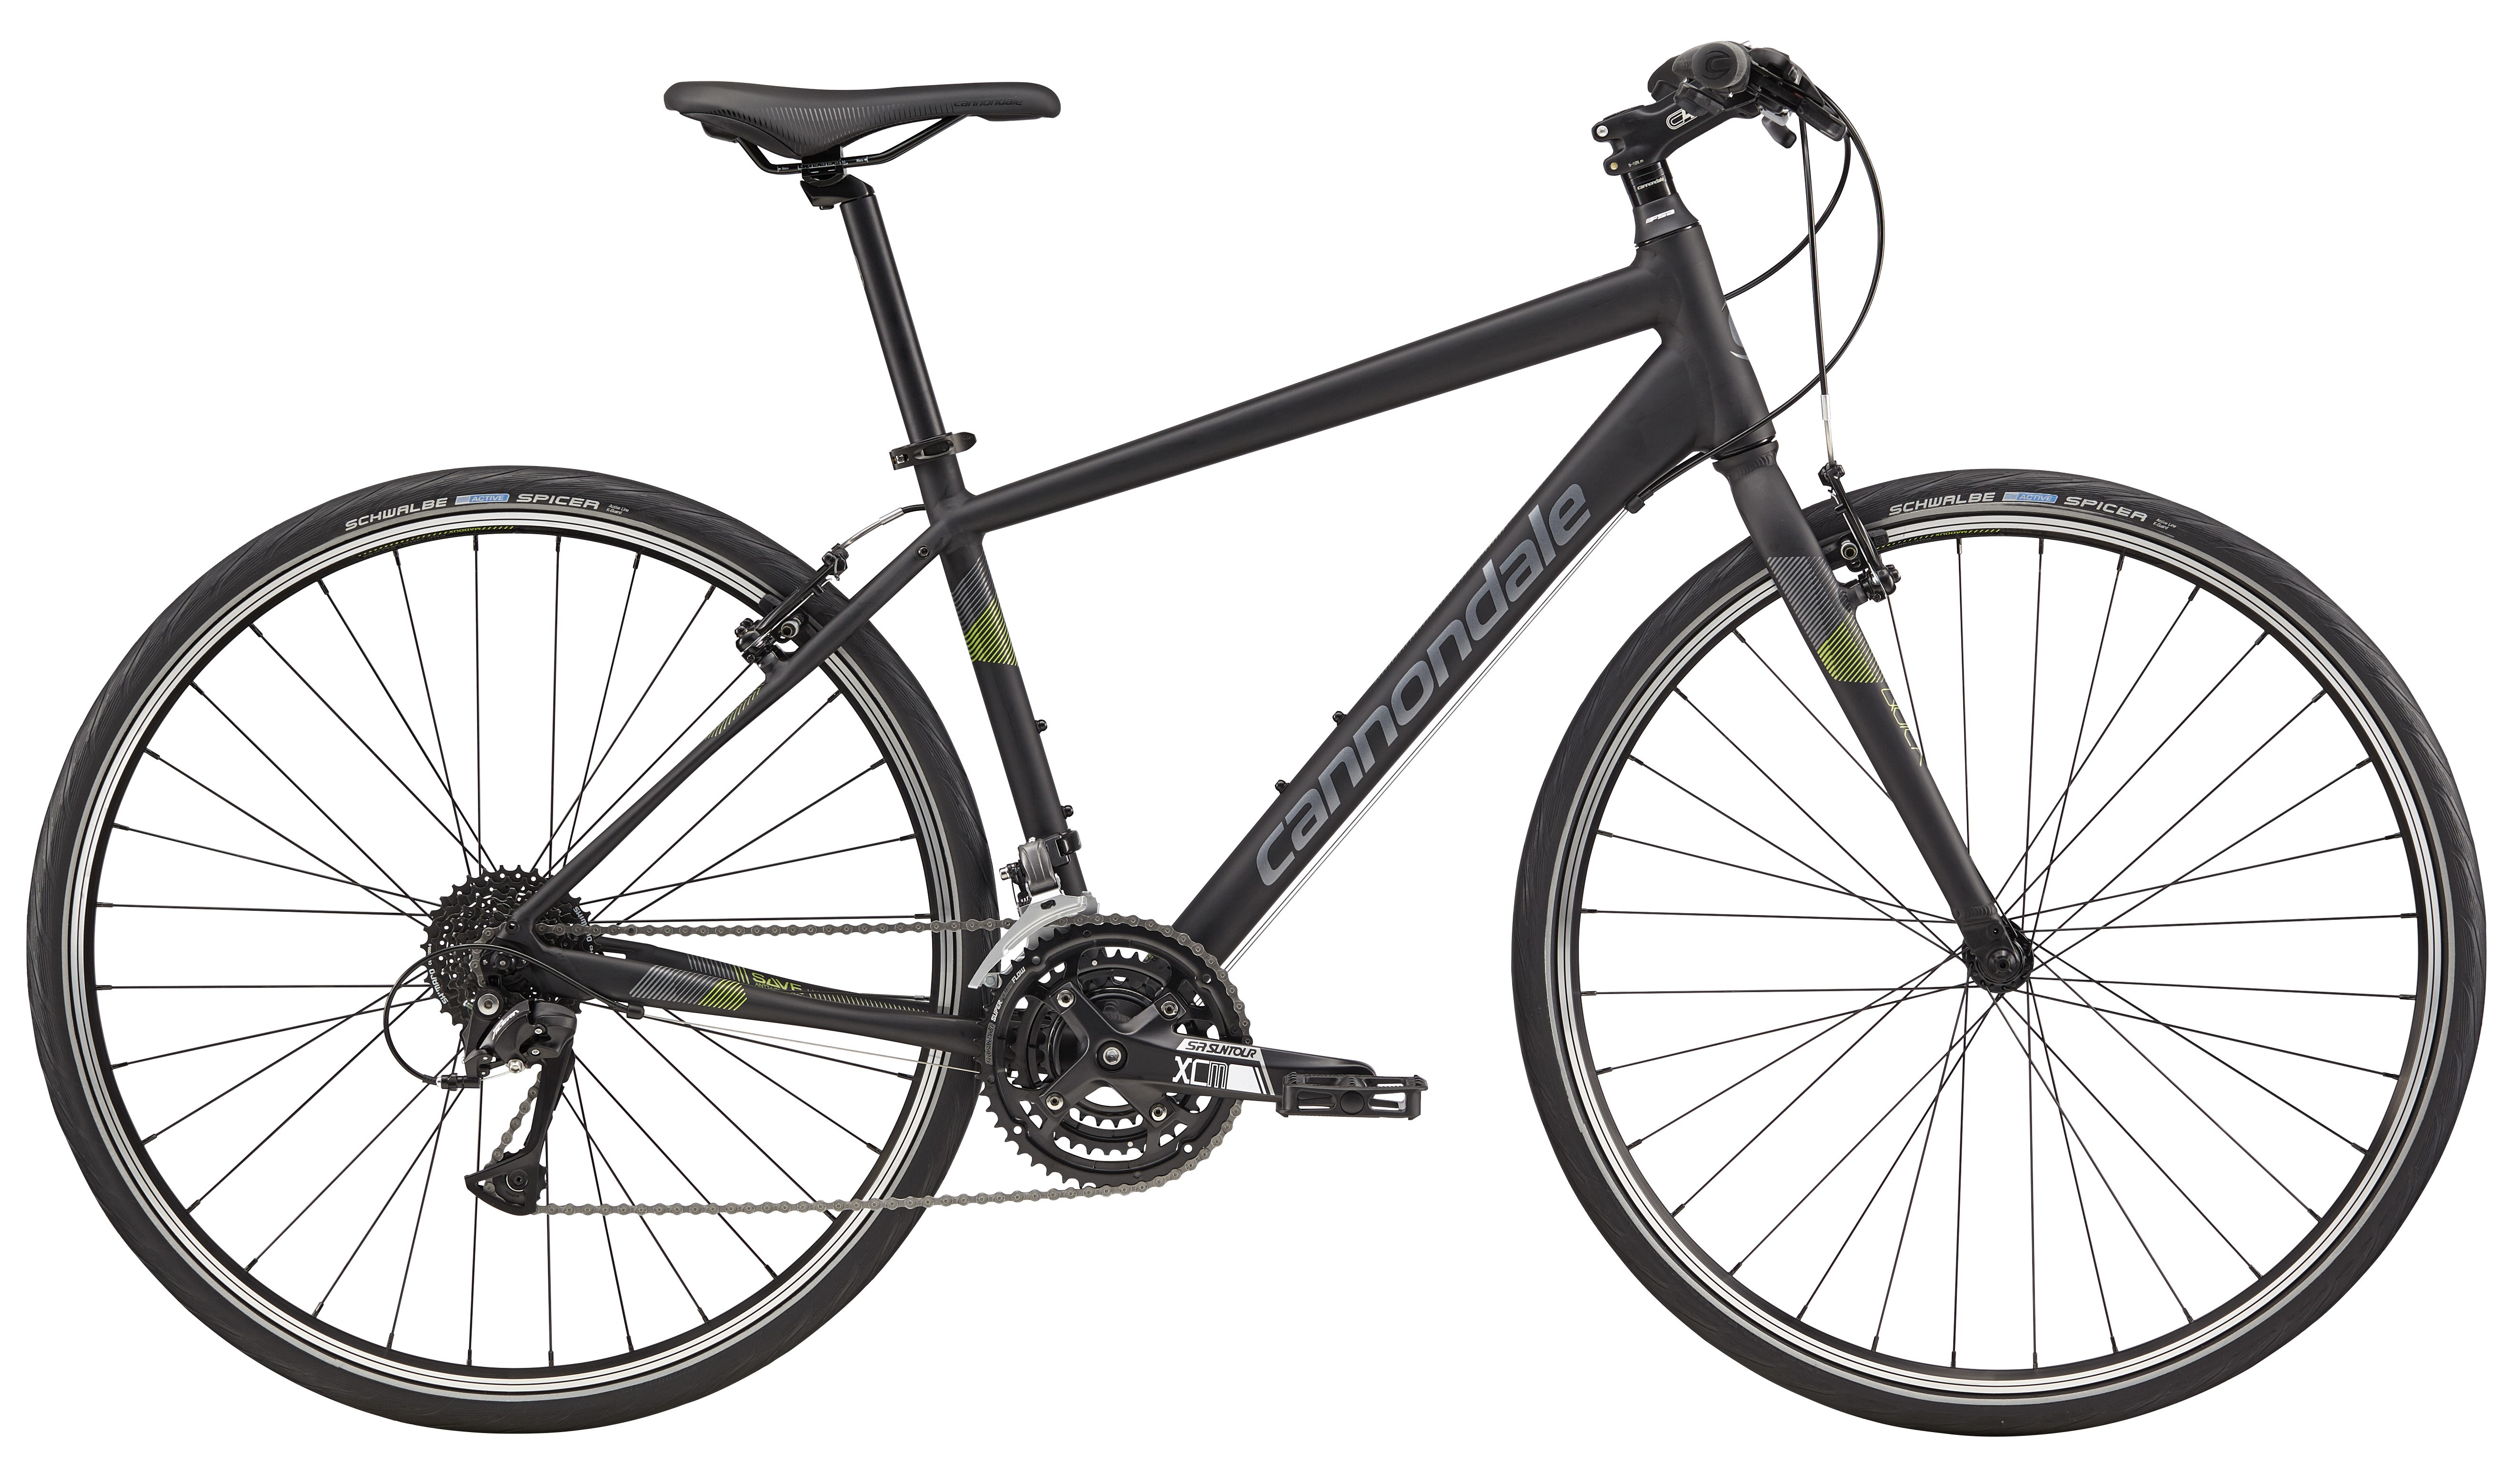 92b837c7b25 2018 Cannondale Quick 6 Jet Black w/ Charcoal, Green – Bicycle One